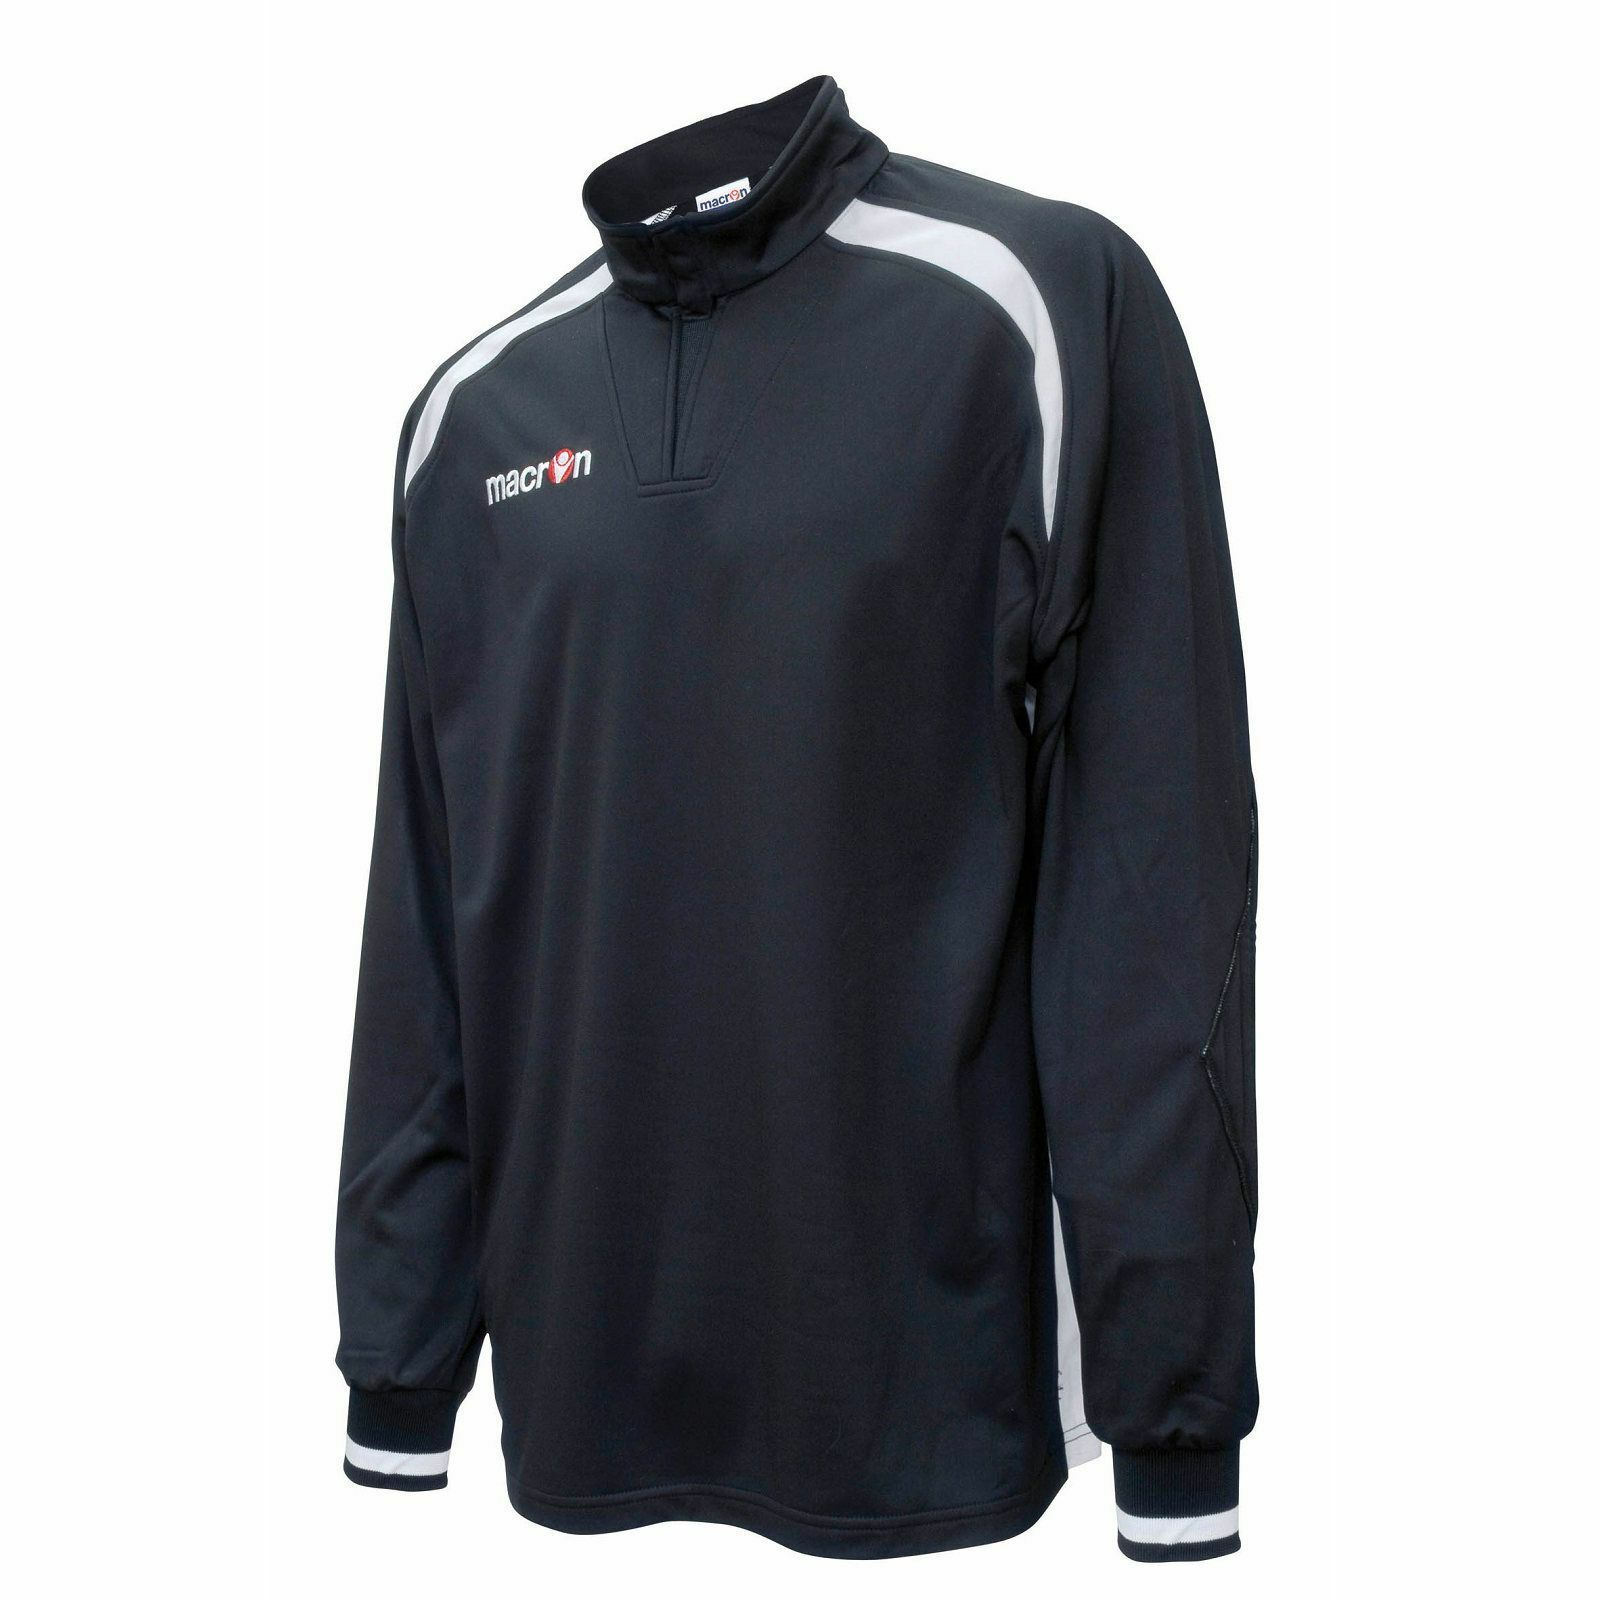 TRAINING JERSEY GOALKEEPER FOOTBALL GRID - MACRON - SIZE from XS to 2XL